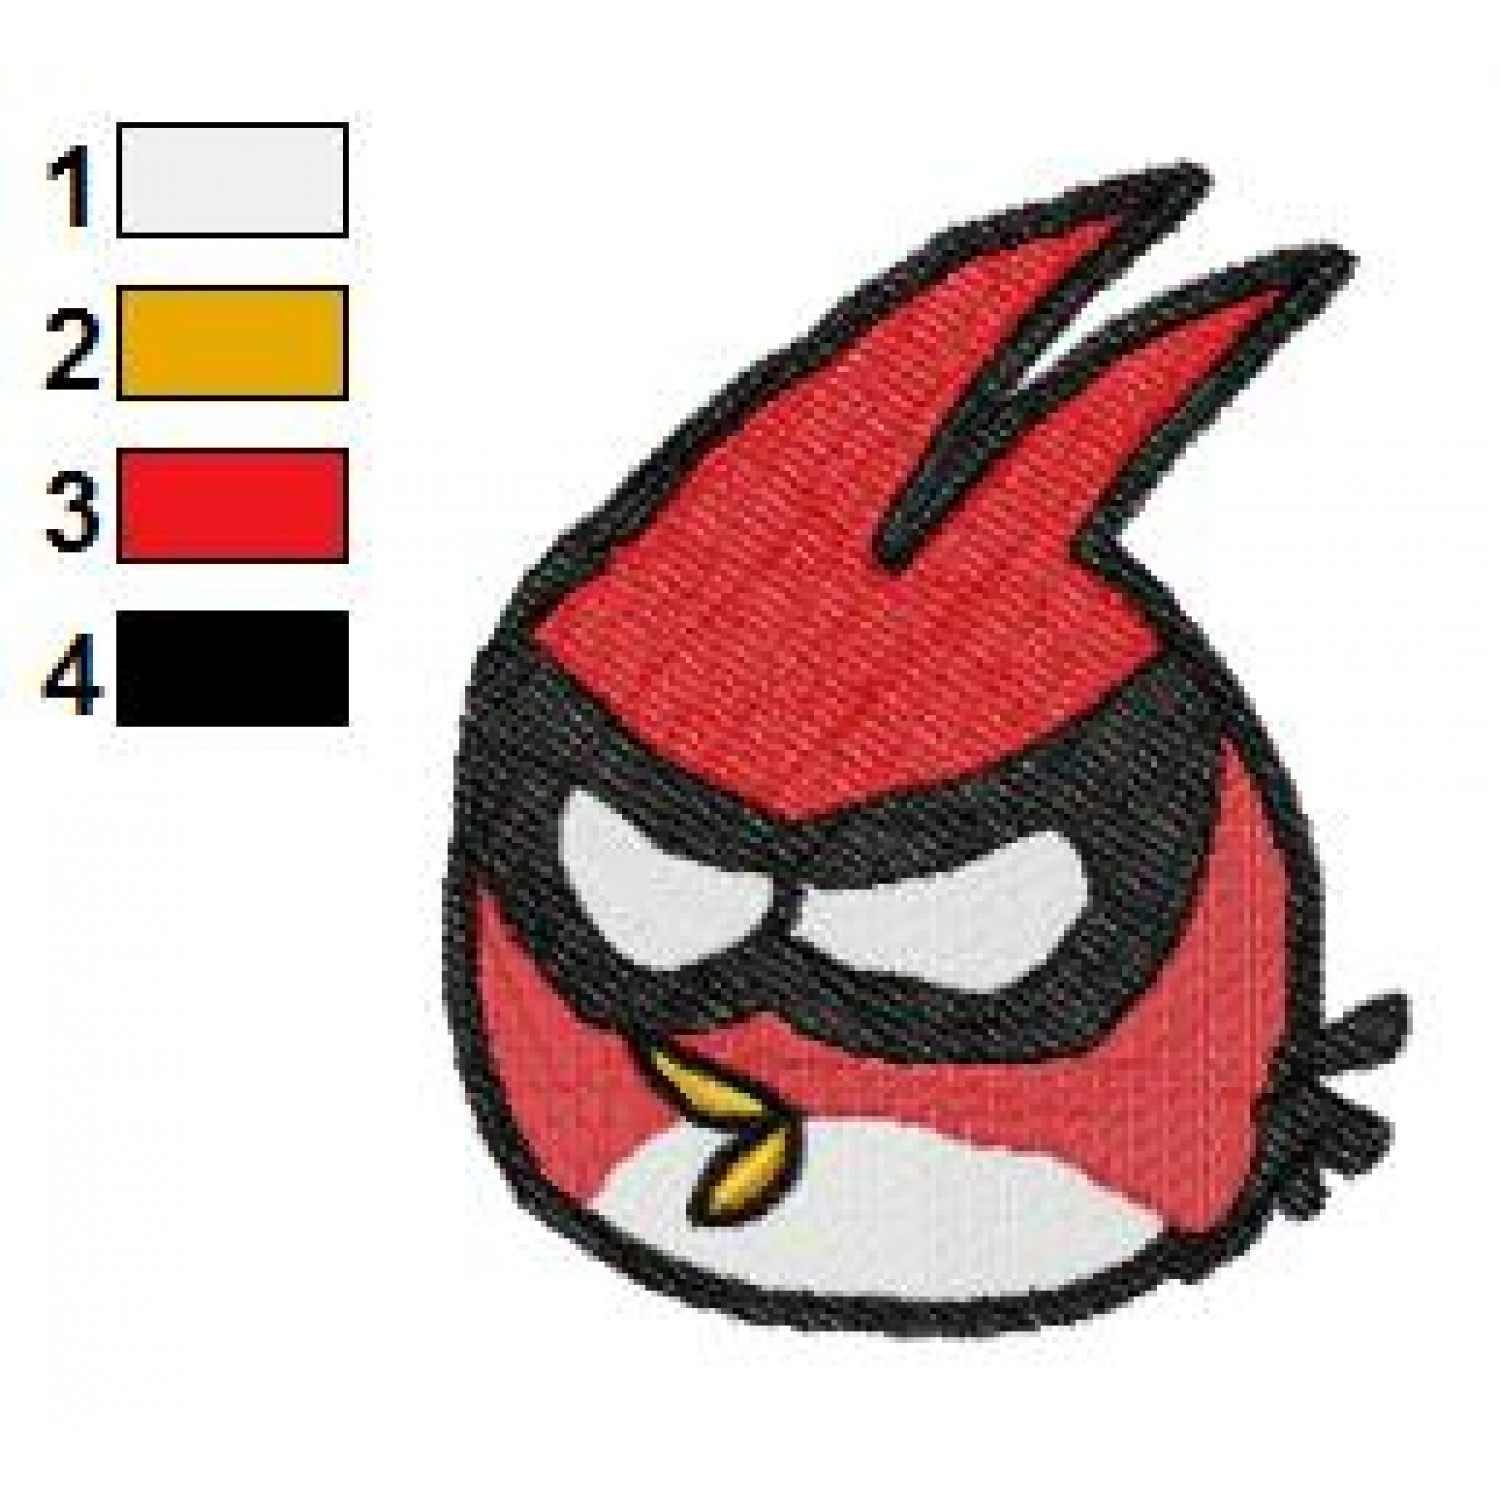 Angry birds space embroidery design 04 for Space embroidery designs